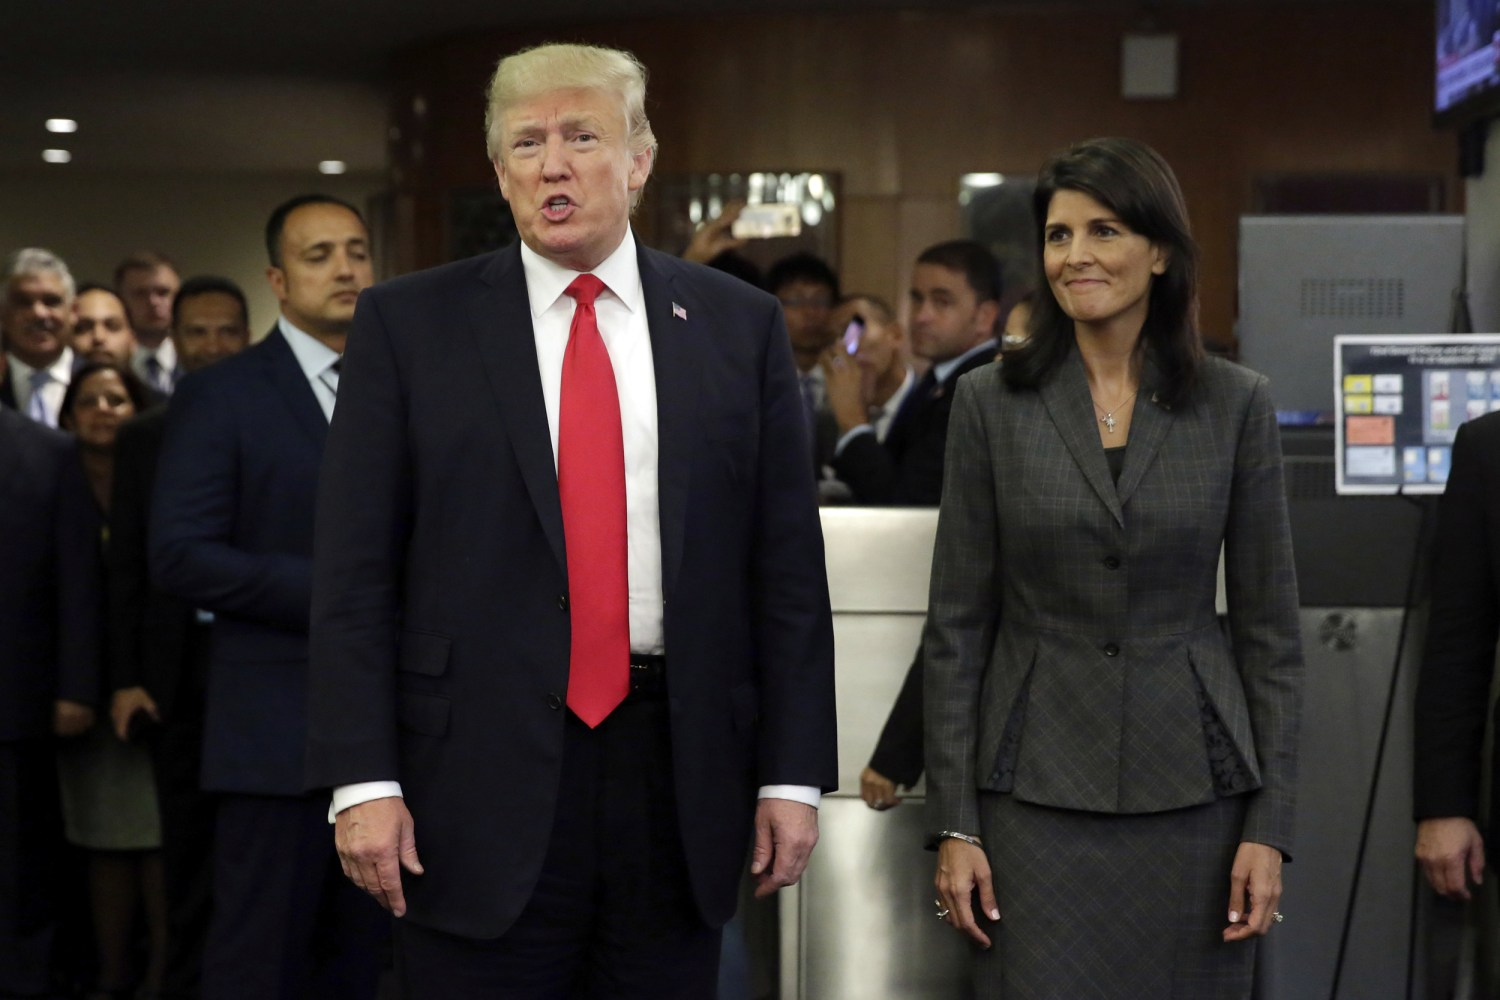 Trump slams US's 'unfair' contribution to United Nations  budget